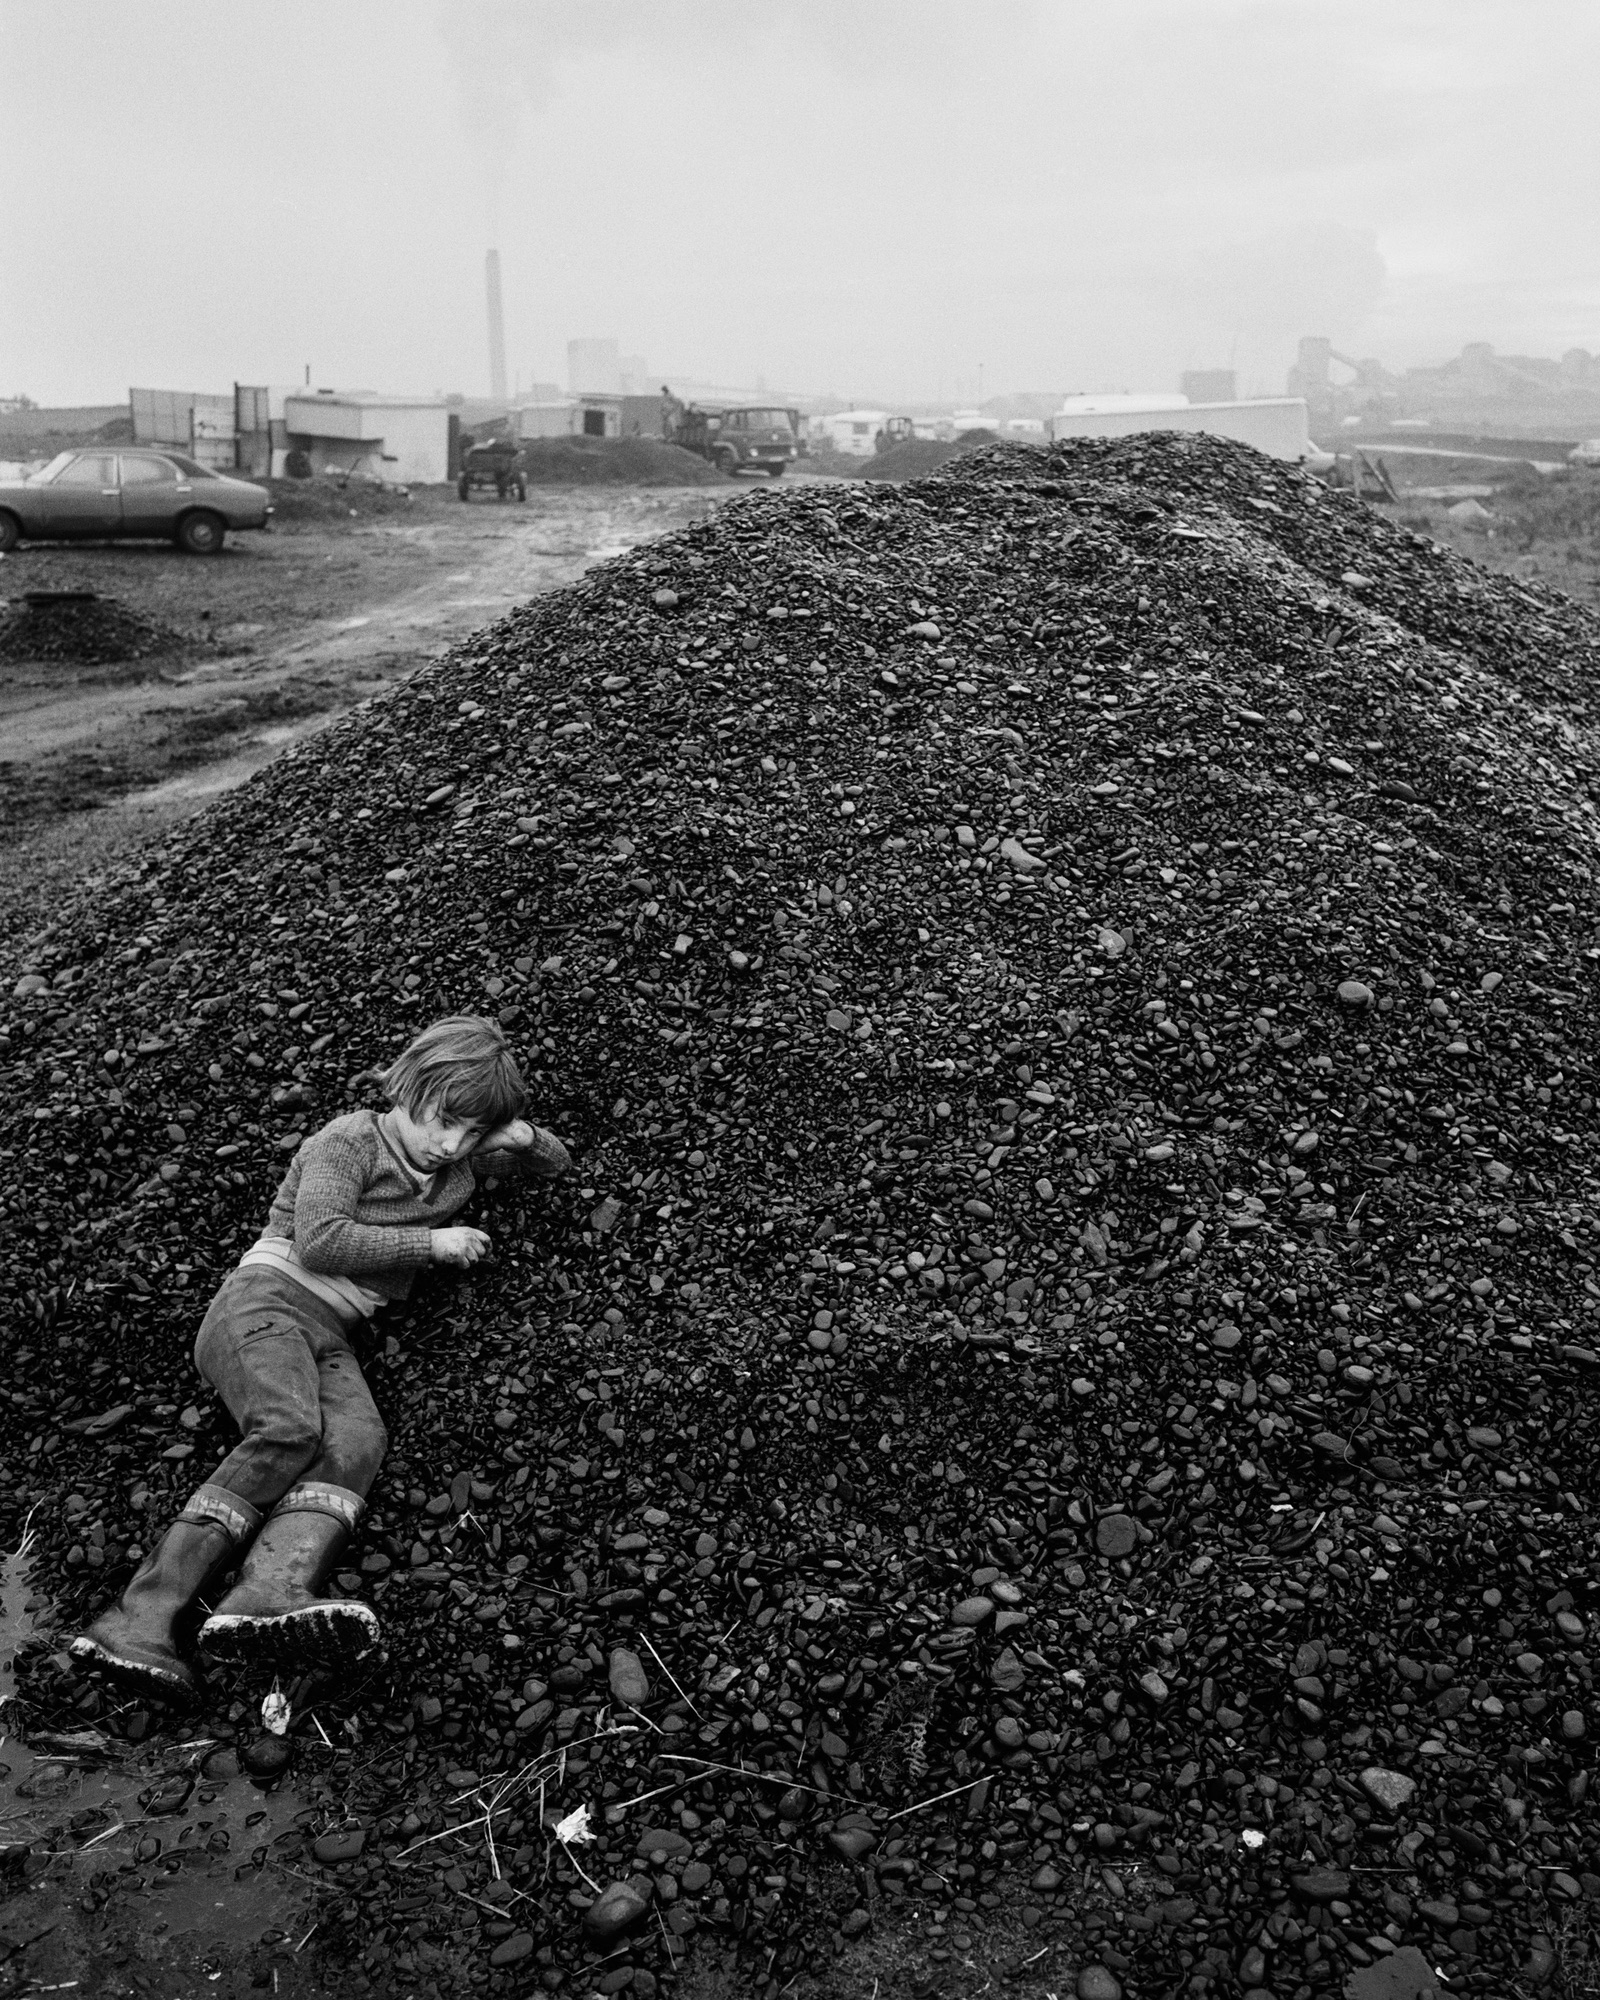 John on the Coal, Seacoal Camp, Lynemouth, Northumberland